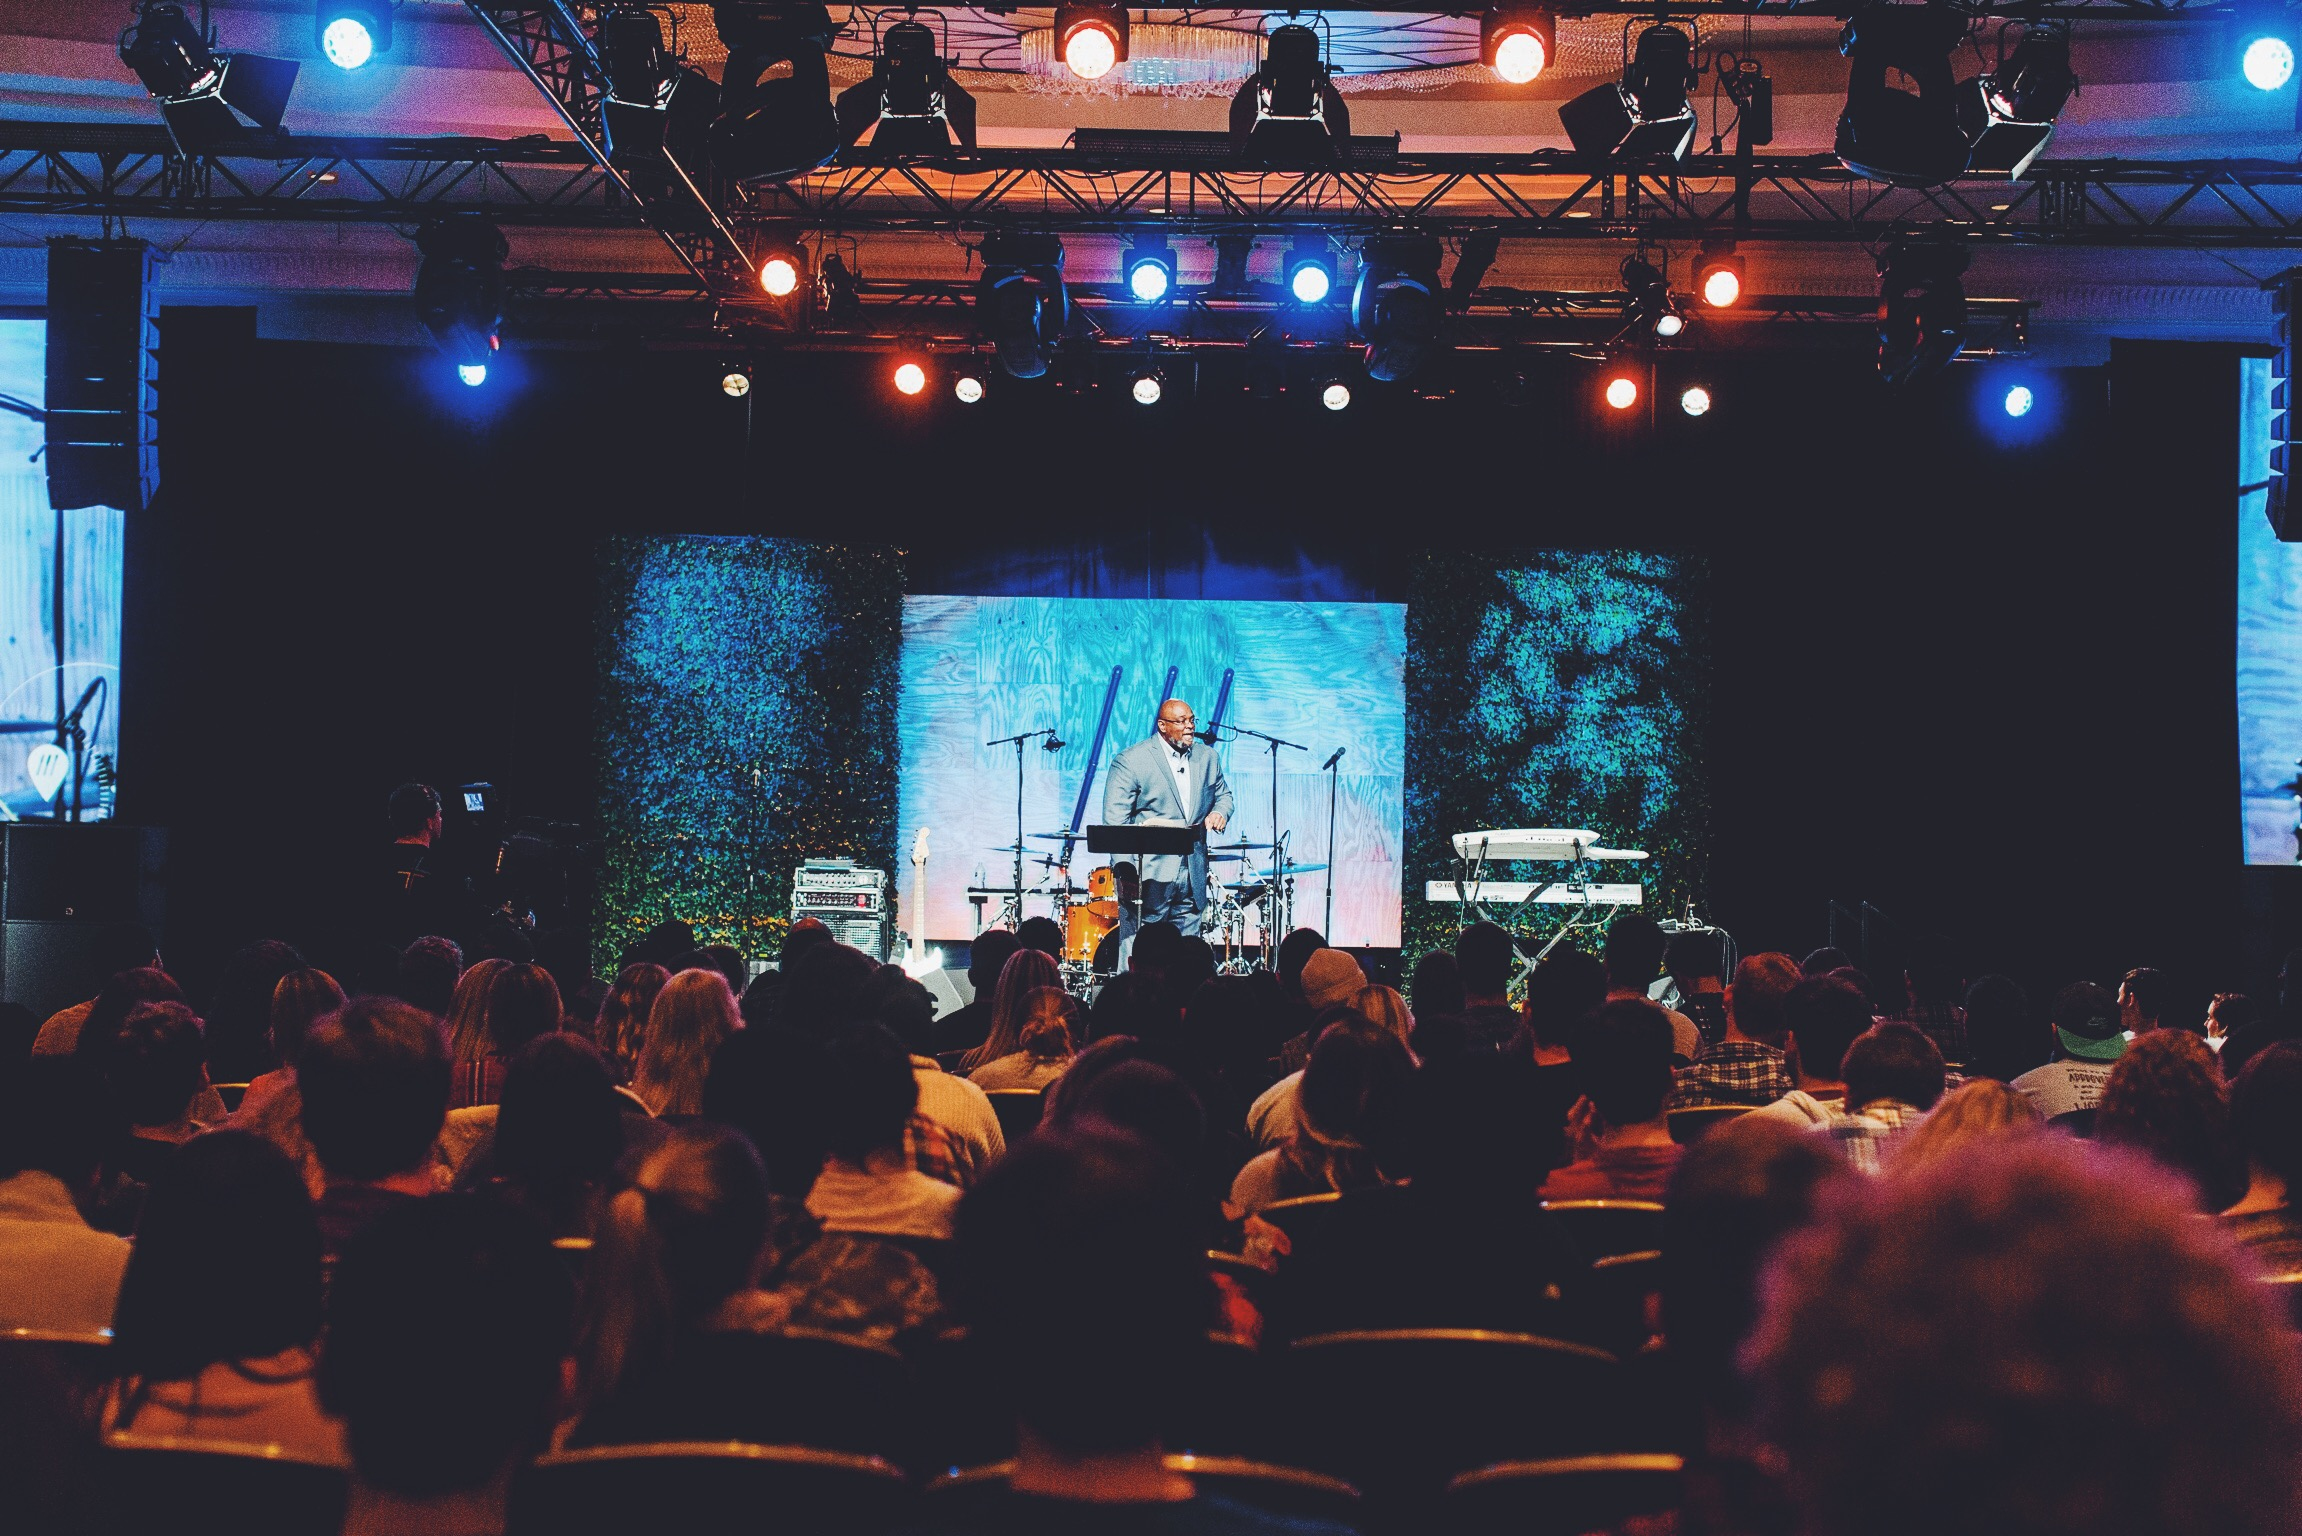 Winter Conference - Your Path to More  Discover what God has next